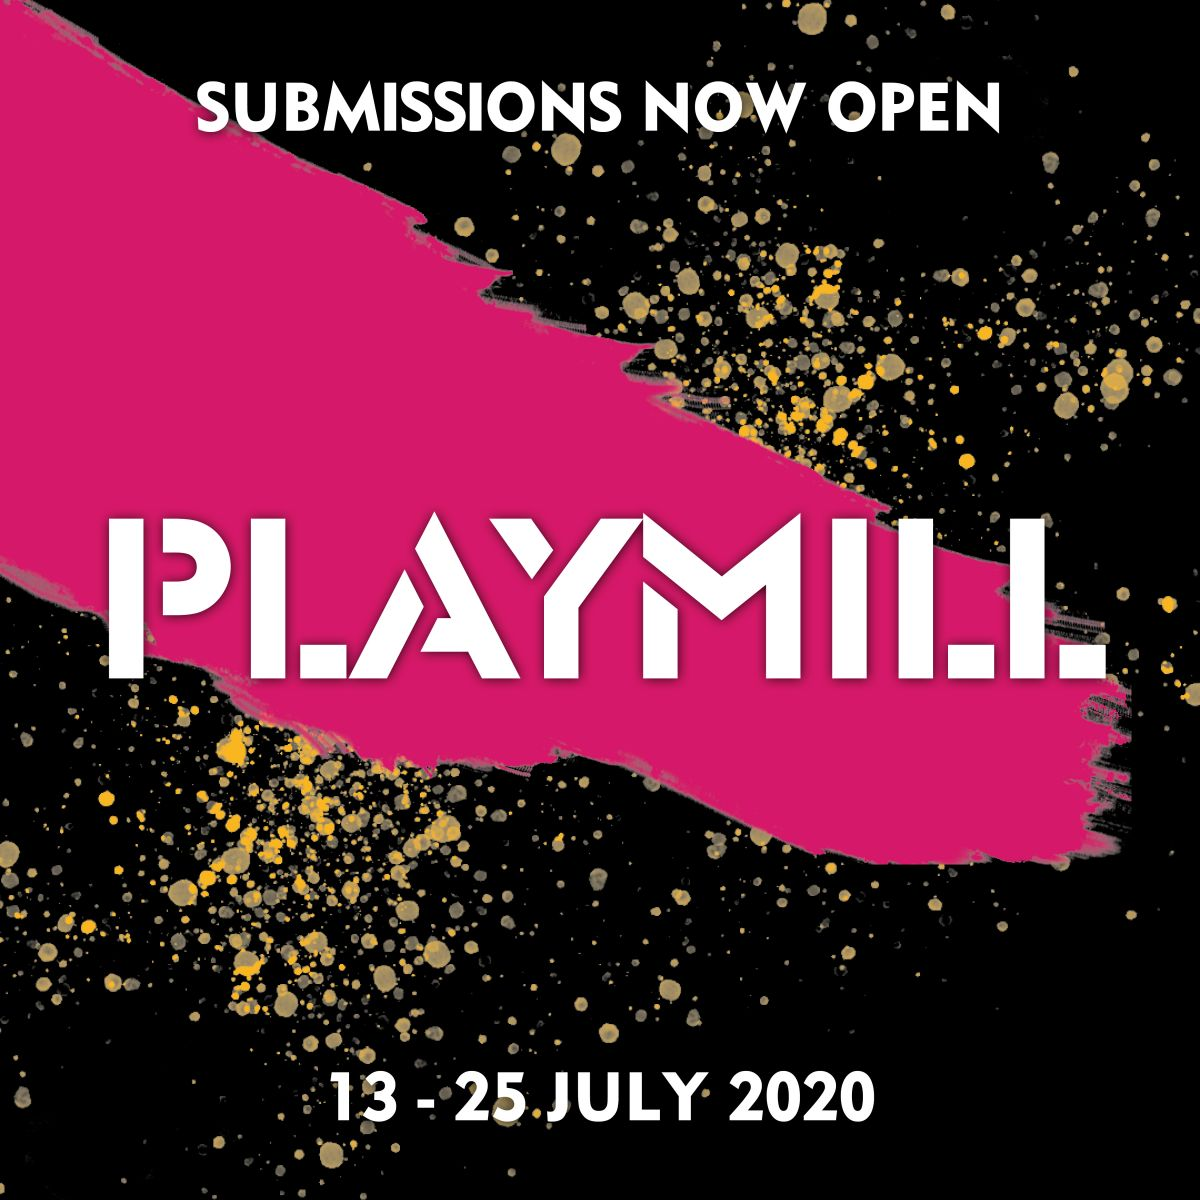 Playmill 2020: submissions now open